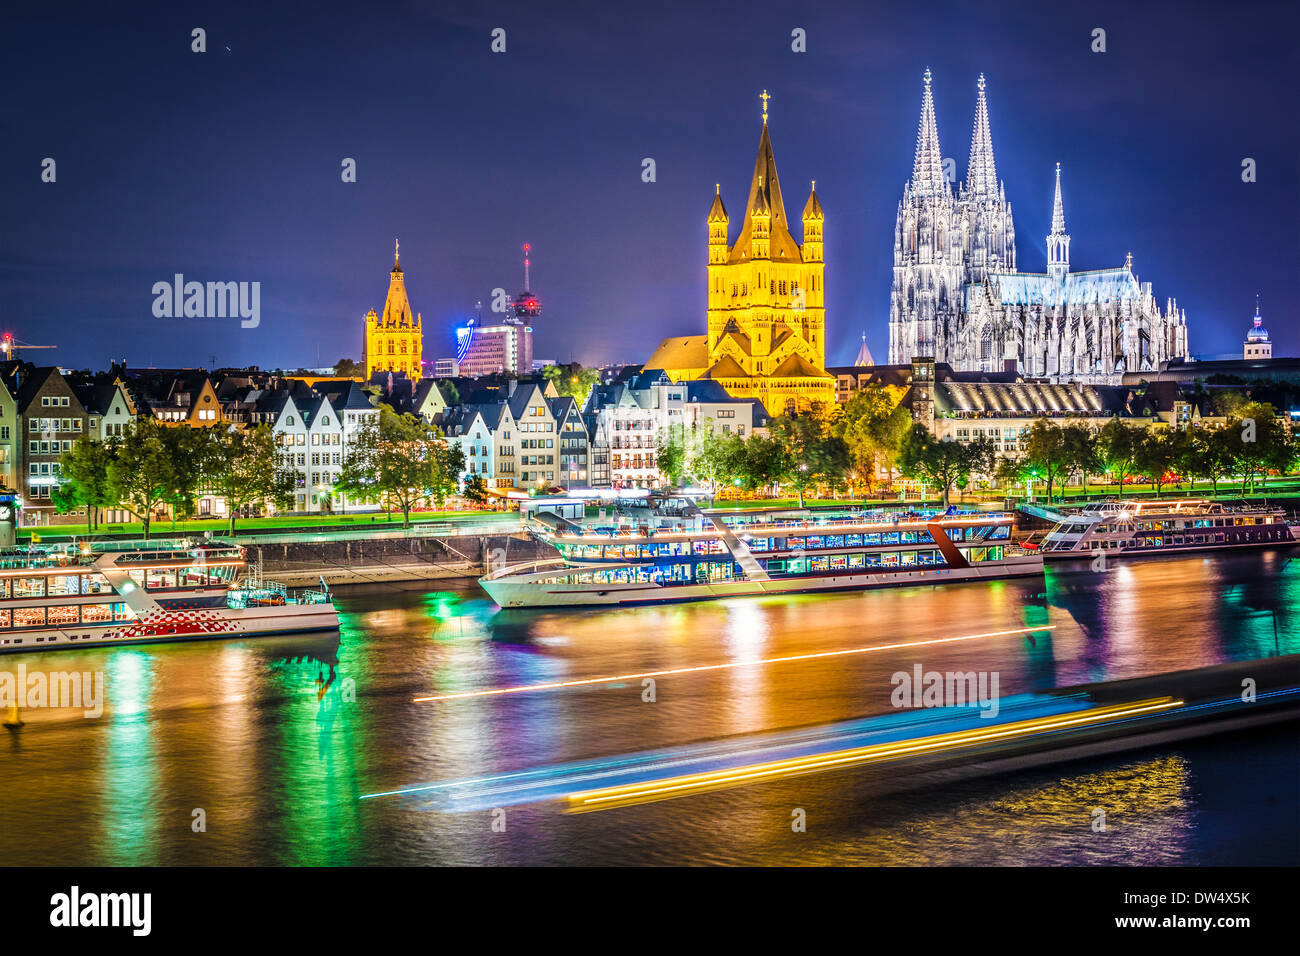 Cologne, Germany cityscape over the Rhine River. - Stock Image